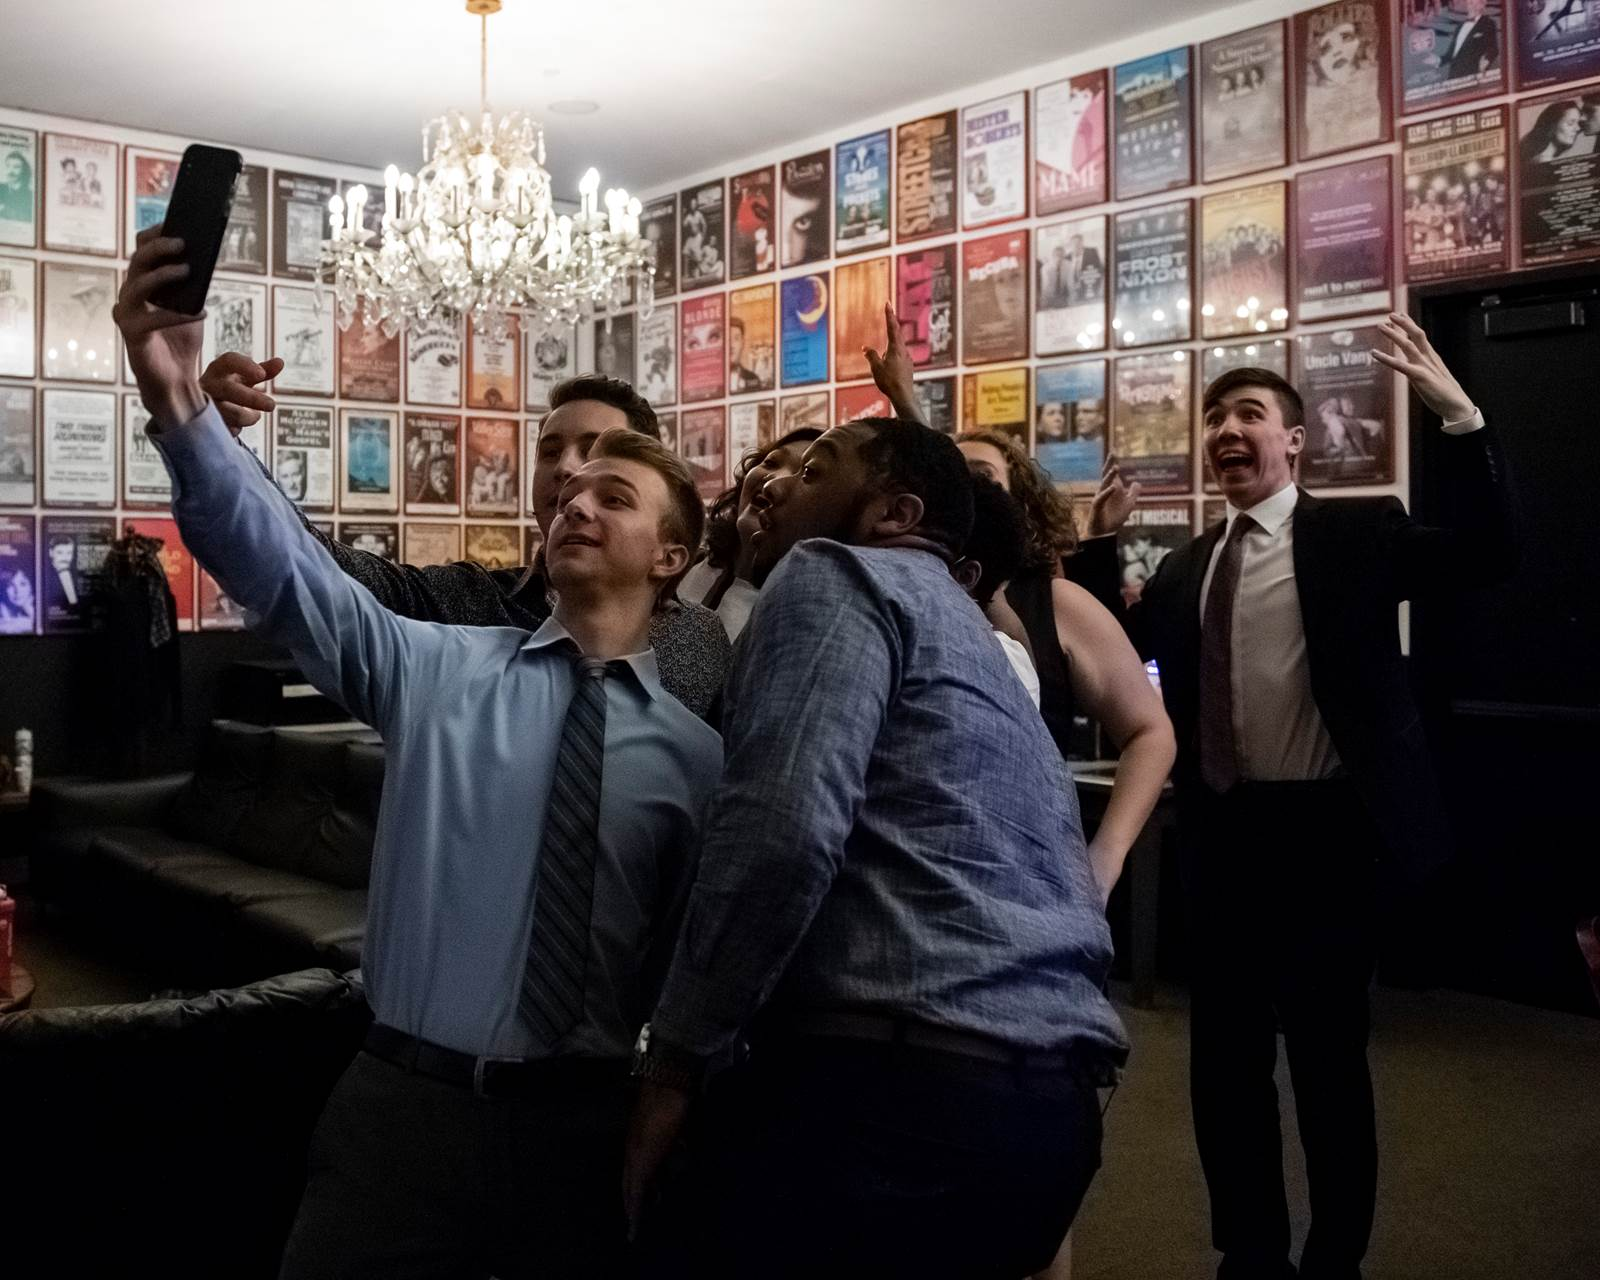 A group of students take a selfie in a room completely lined with show posters.